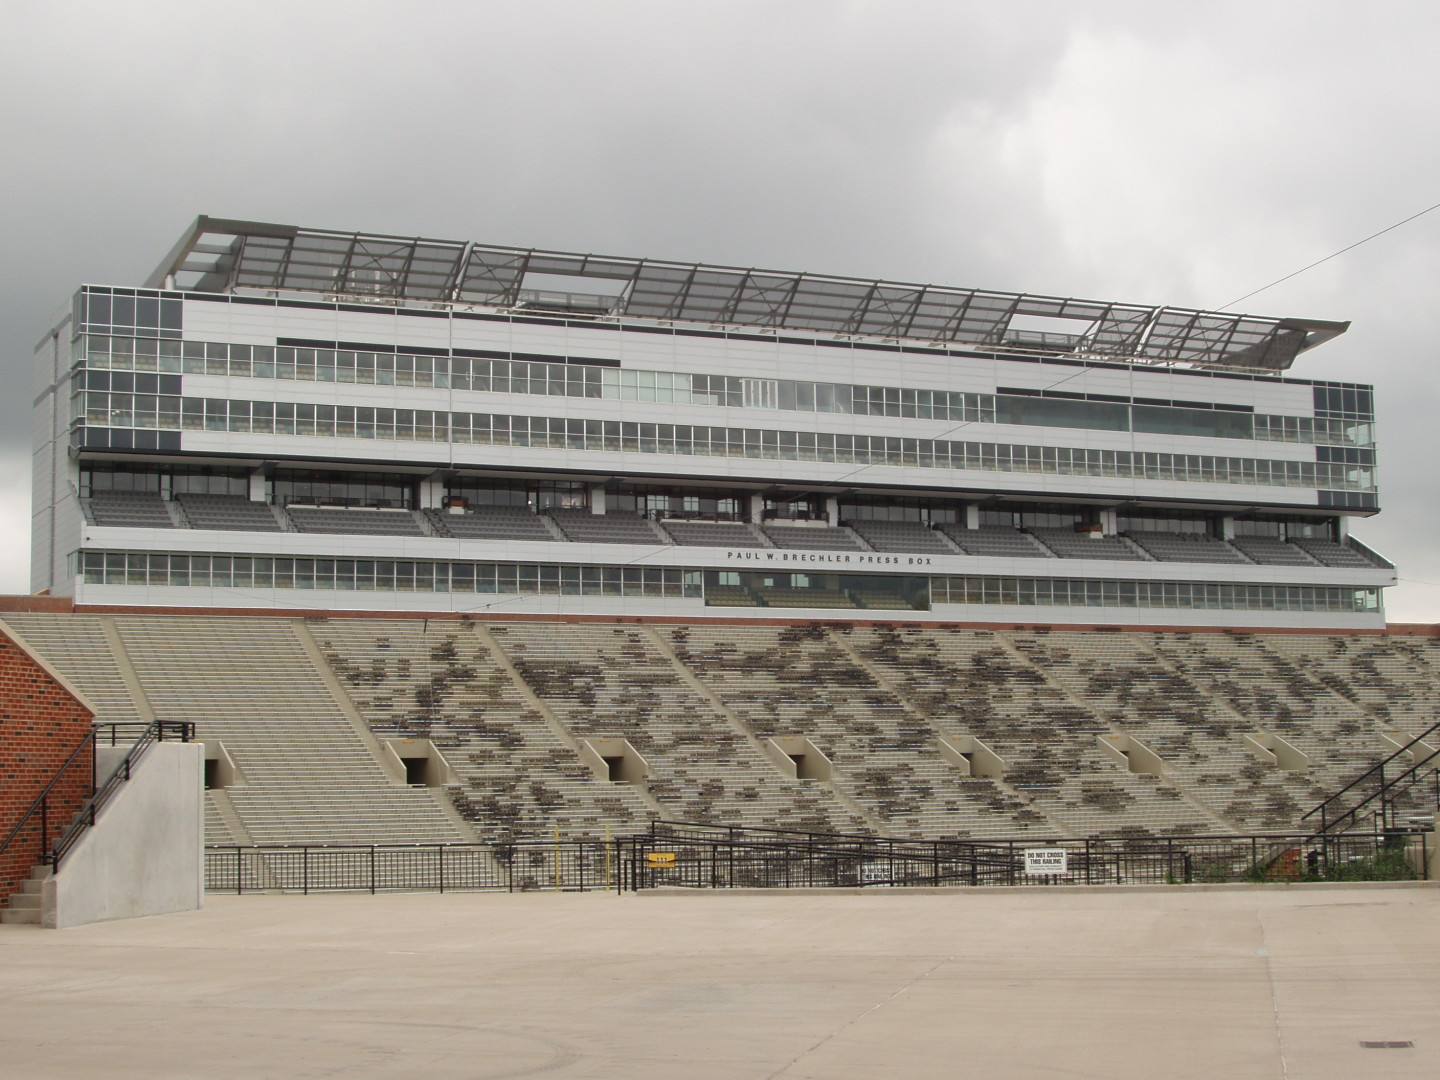 Kinnick Stadium (Iowa City)